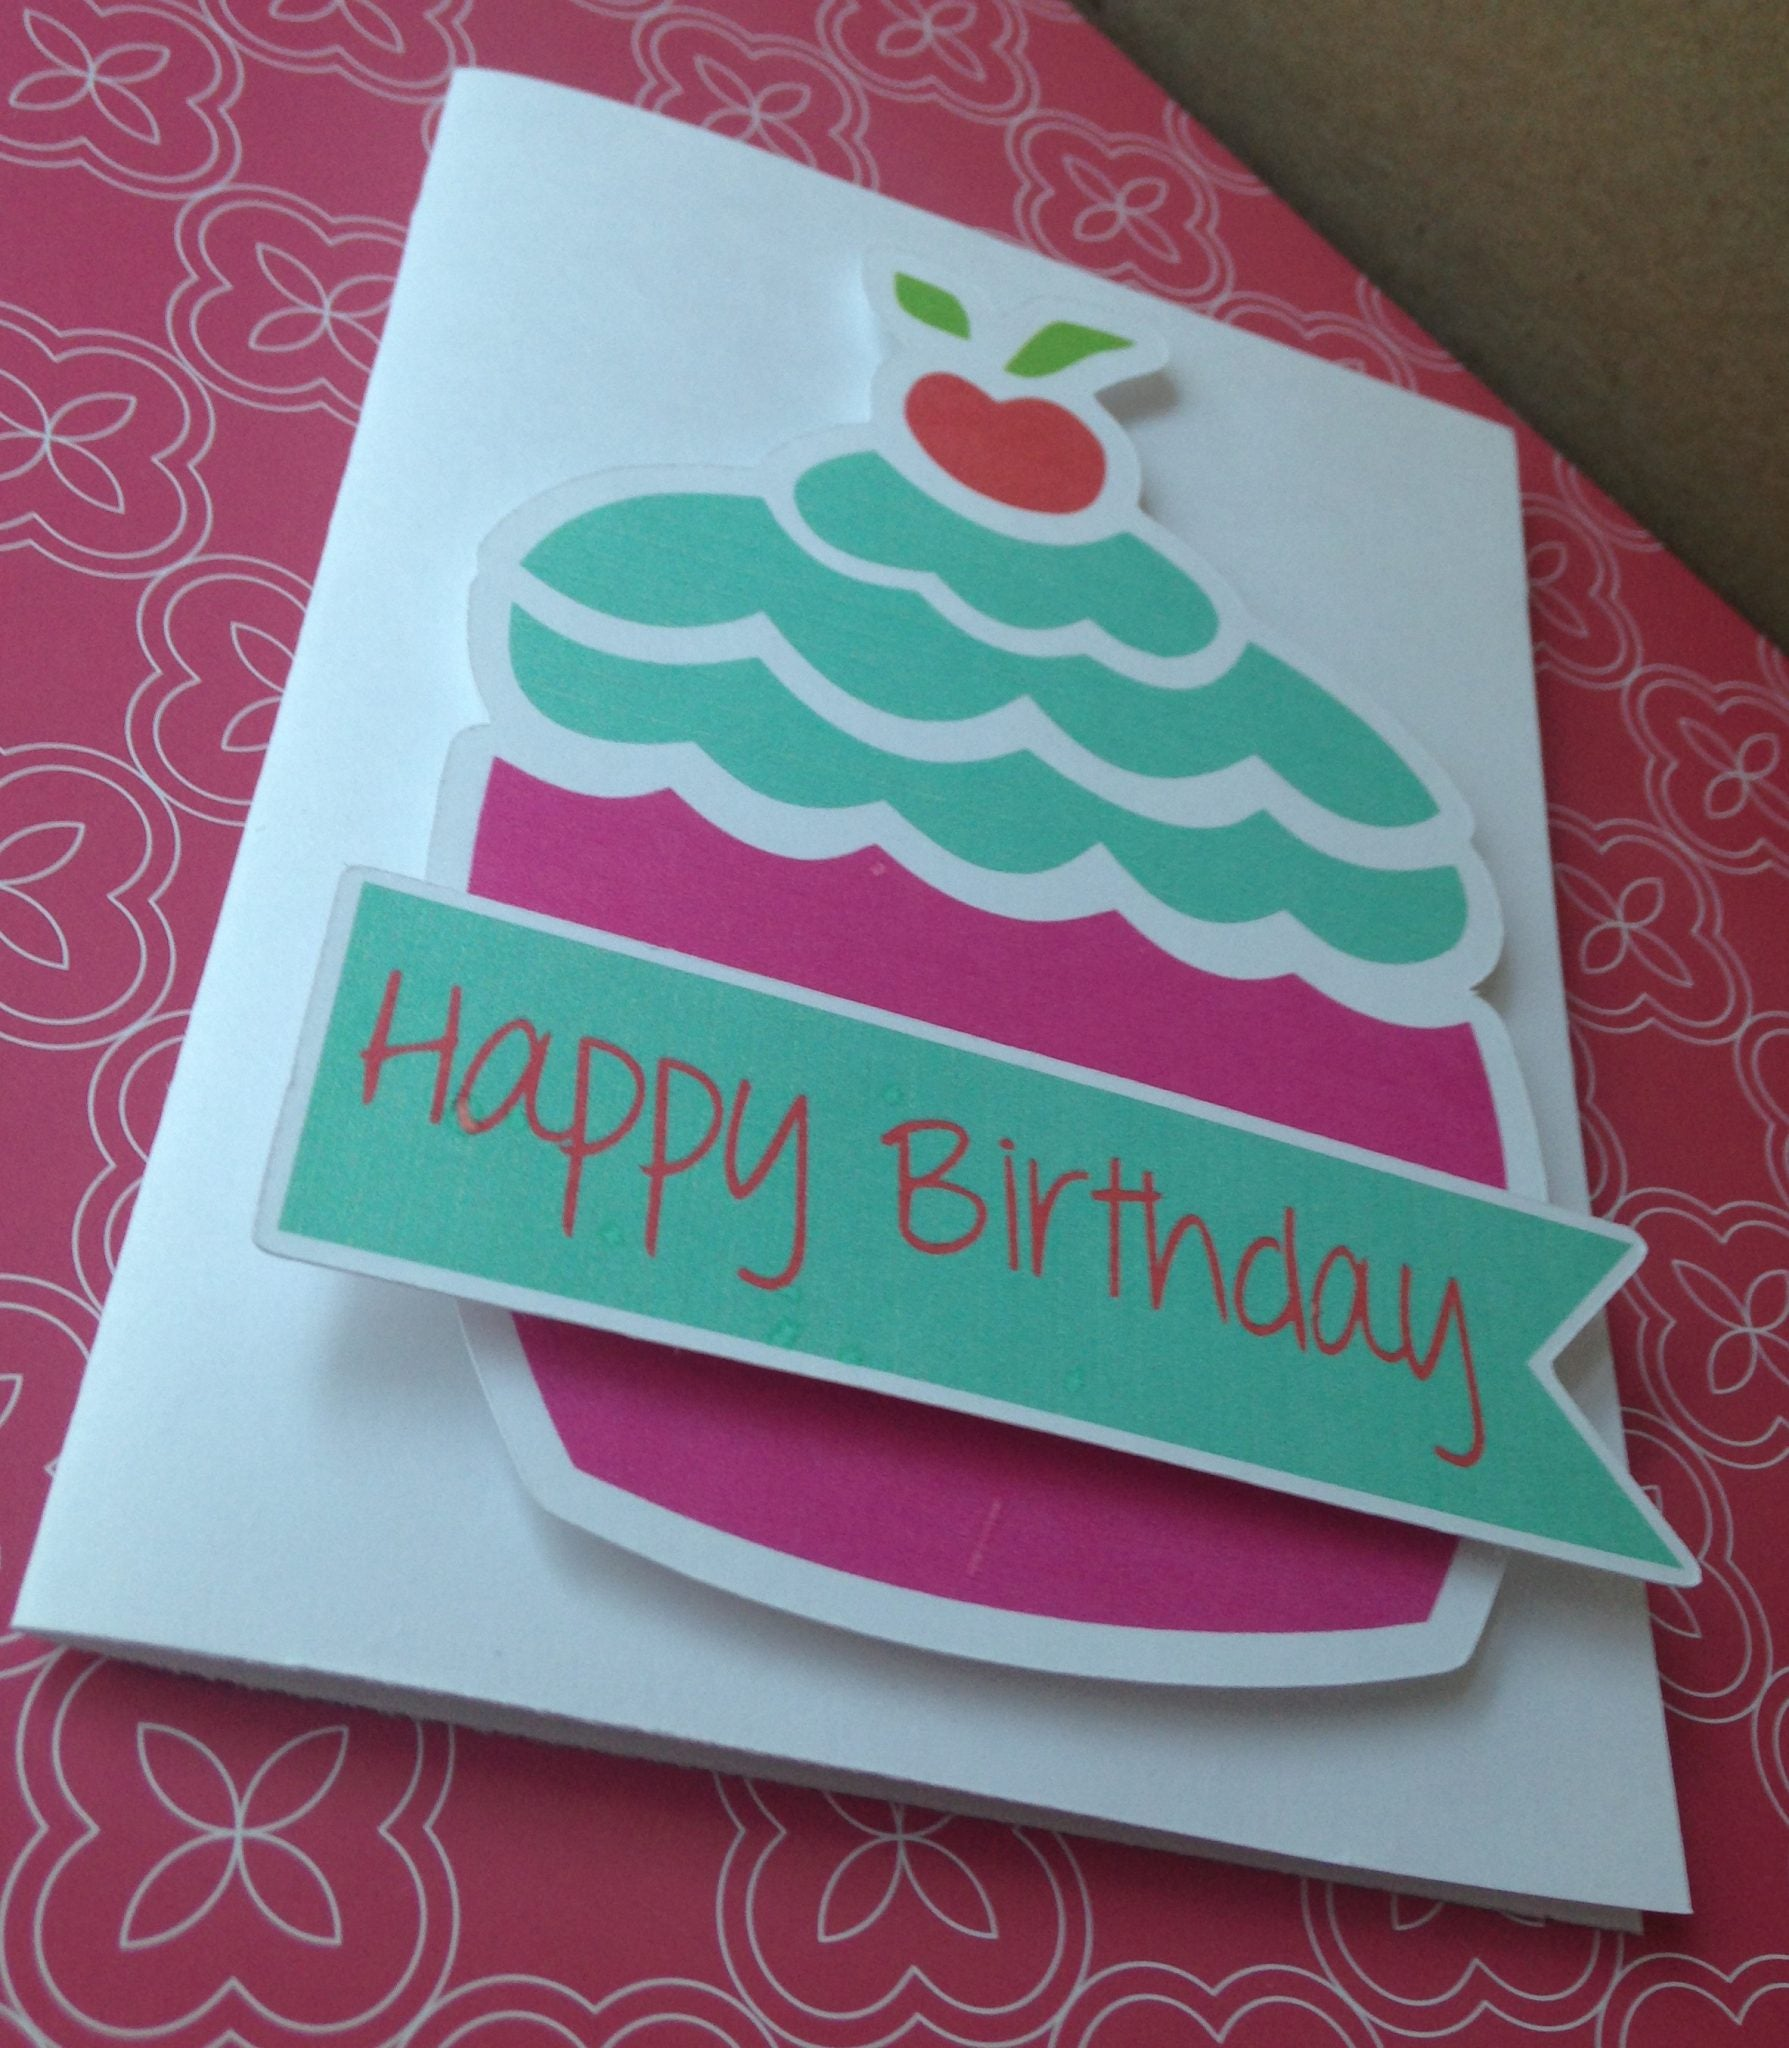 I used the Silhouette Cameo to print and cut my own embellishments and made this cute card in a beat.  So quick and easy and looks so professional!